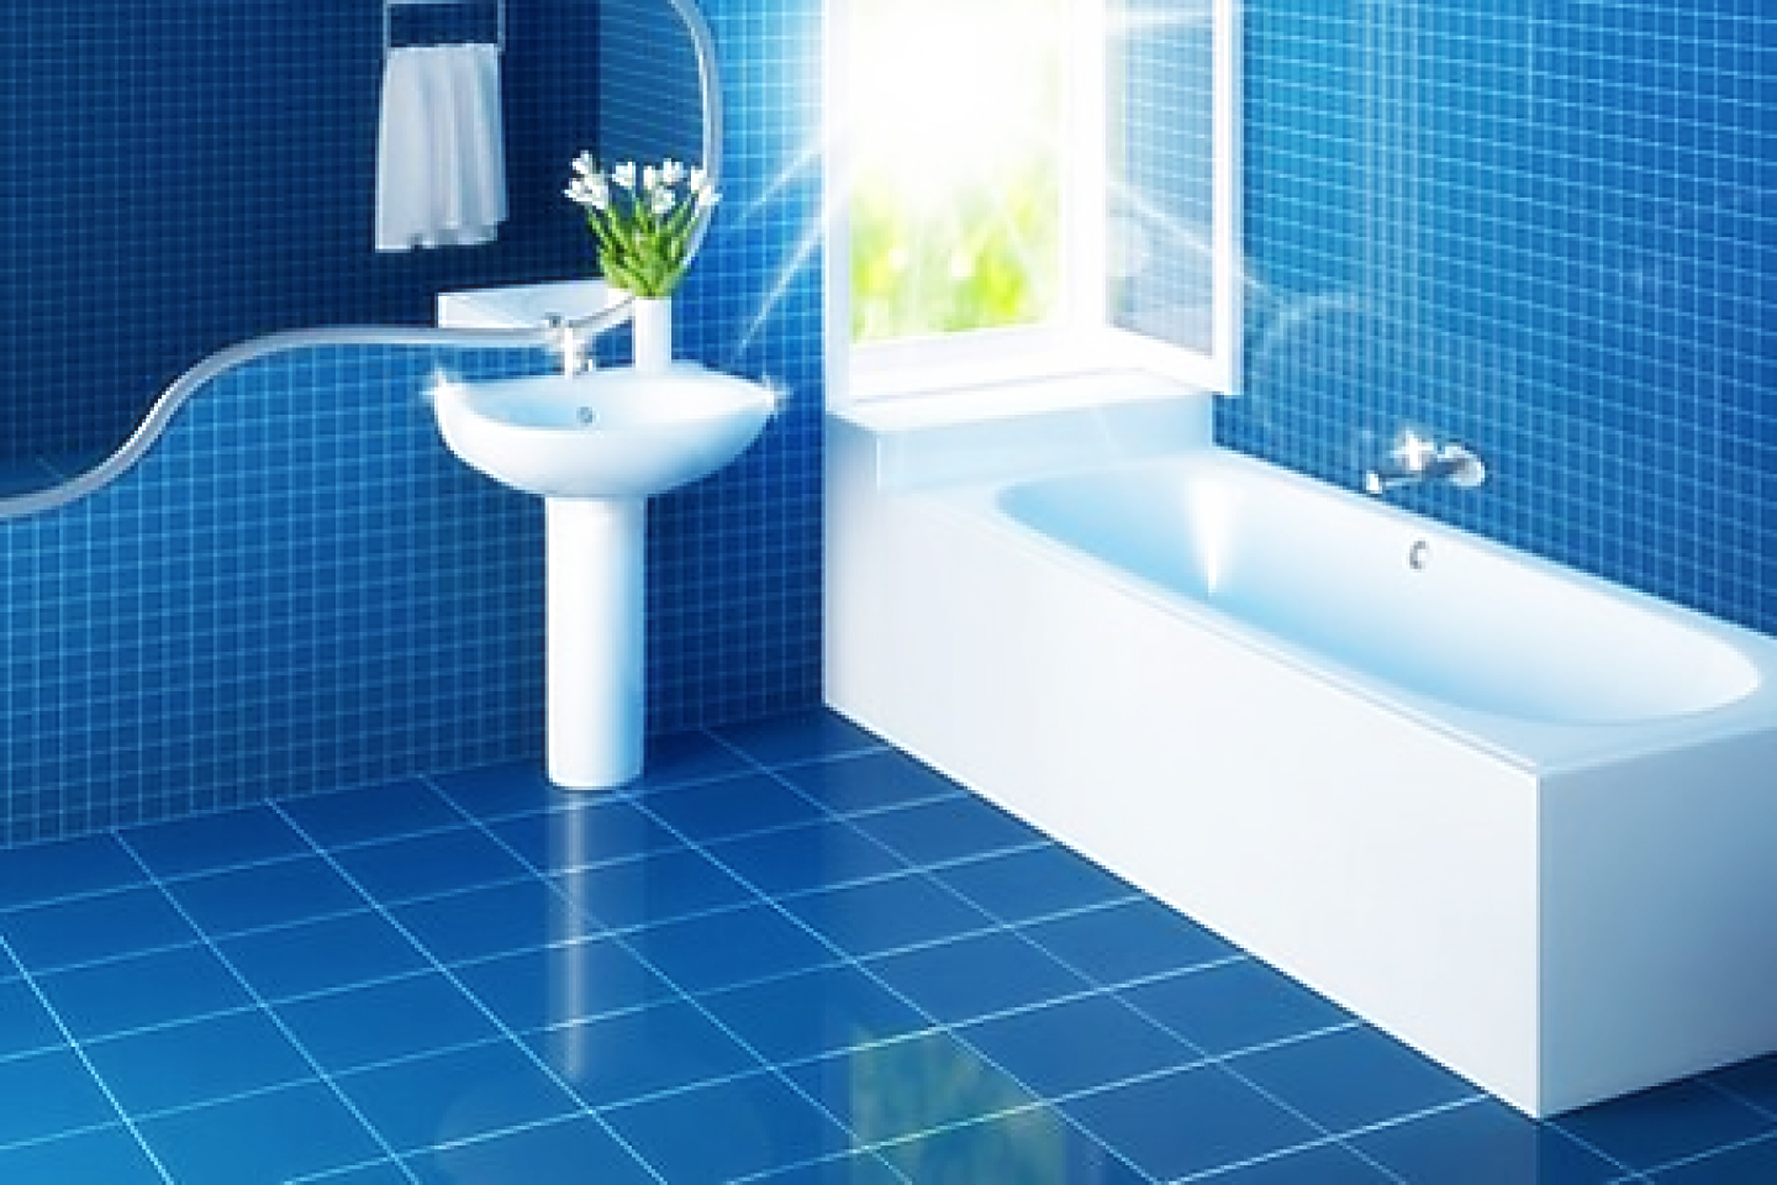 24-Small-bathroom-remodel-before-and-after-blue-tile-bathroom-floor-mirror-towel-hanger-very-small-bathroom-remodel-ideas-small-size-bathtub-very-small-bathroom-remodel